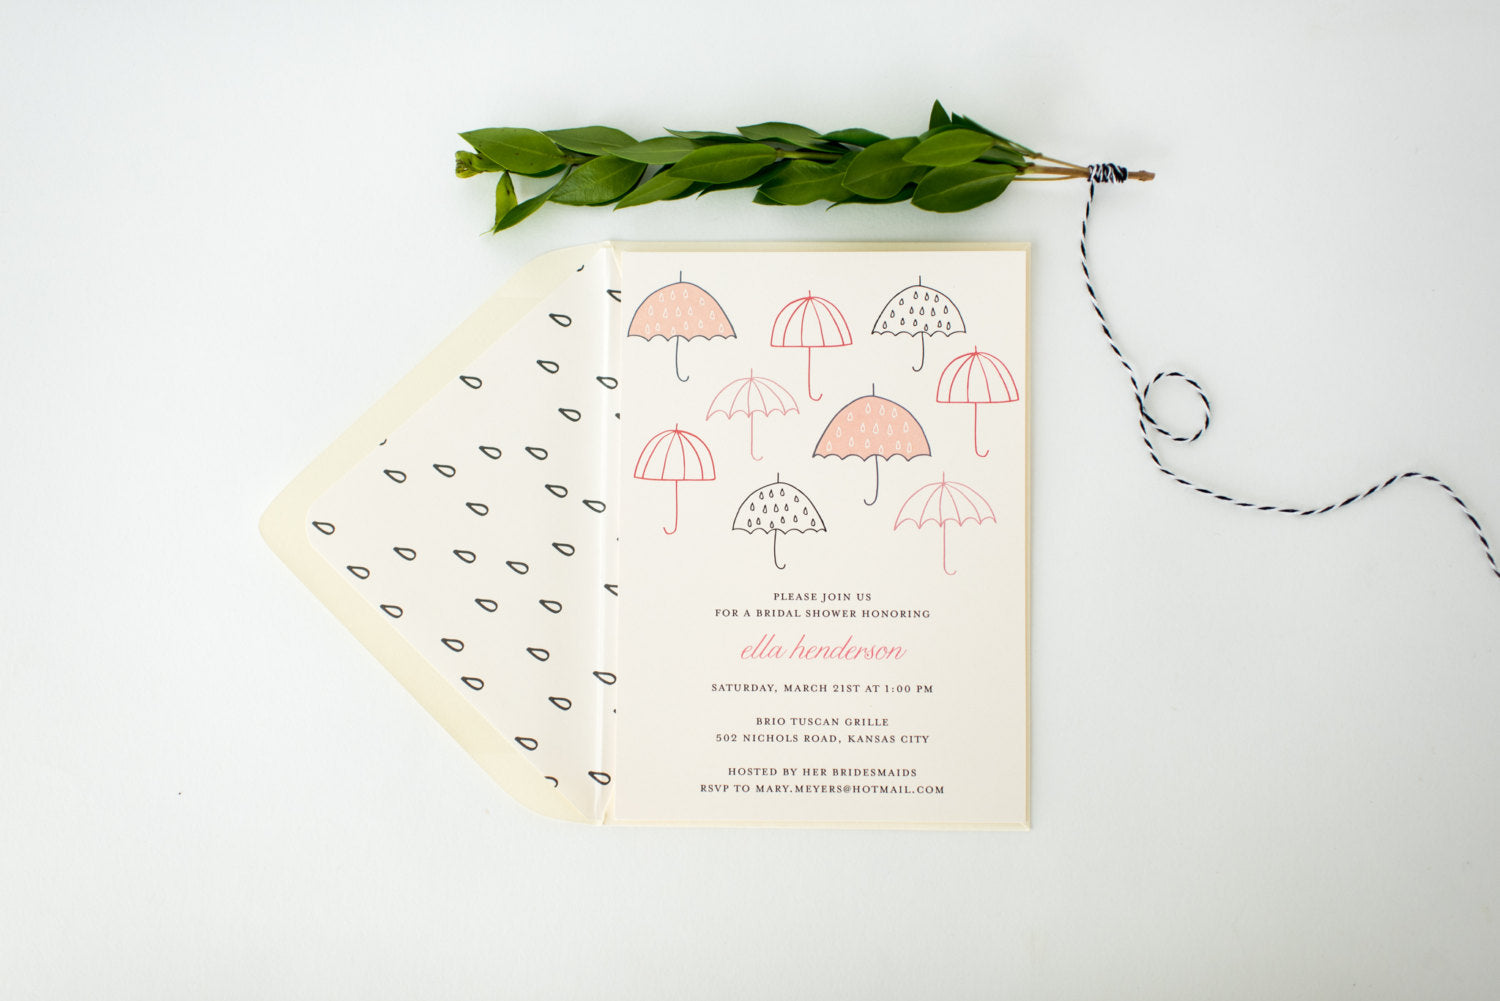 Umbrella bridal shower invitation customizable sets of 10 lola umbrella bridal shower invitation customizable sets of 10 lola louie paperie filmwisefo